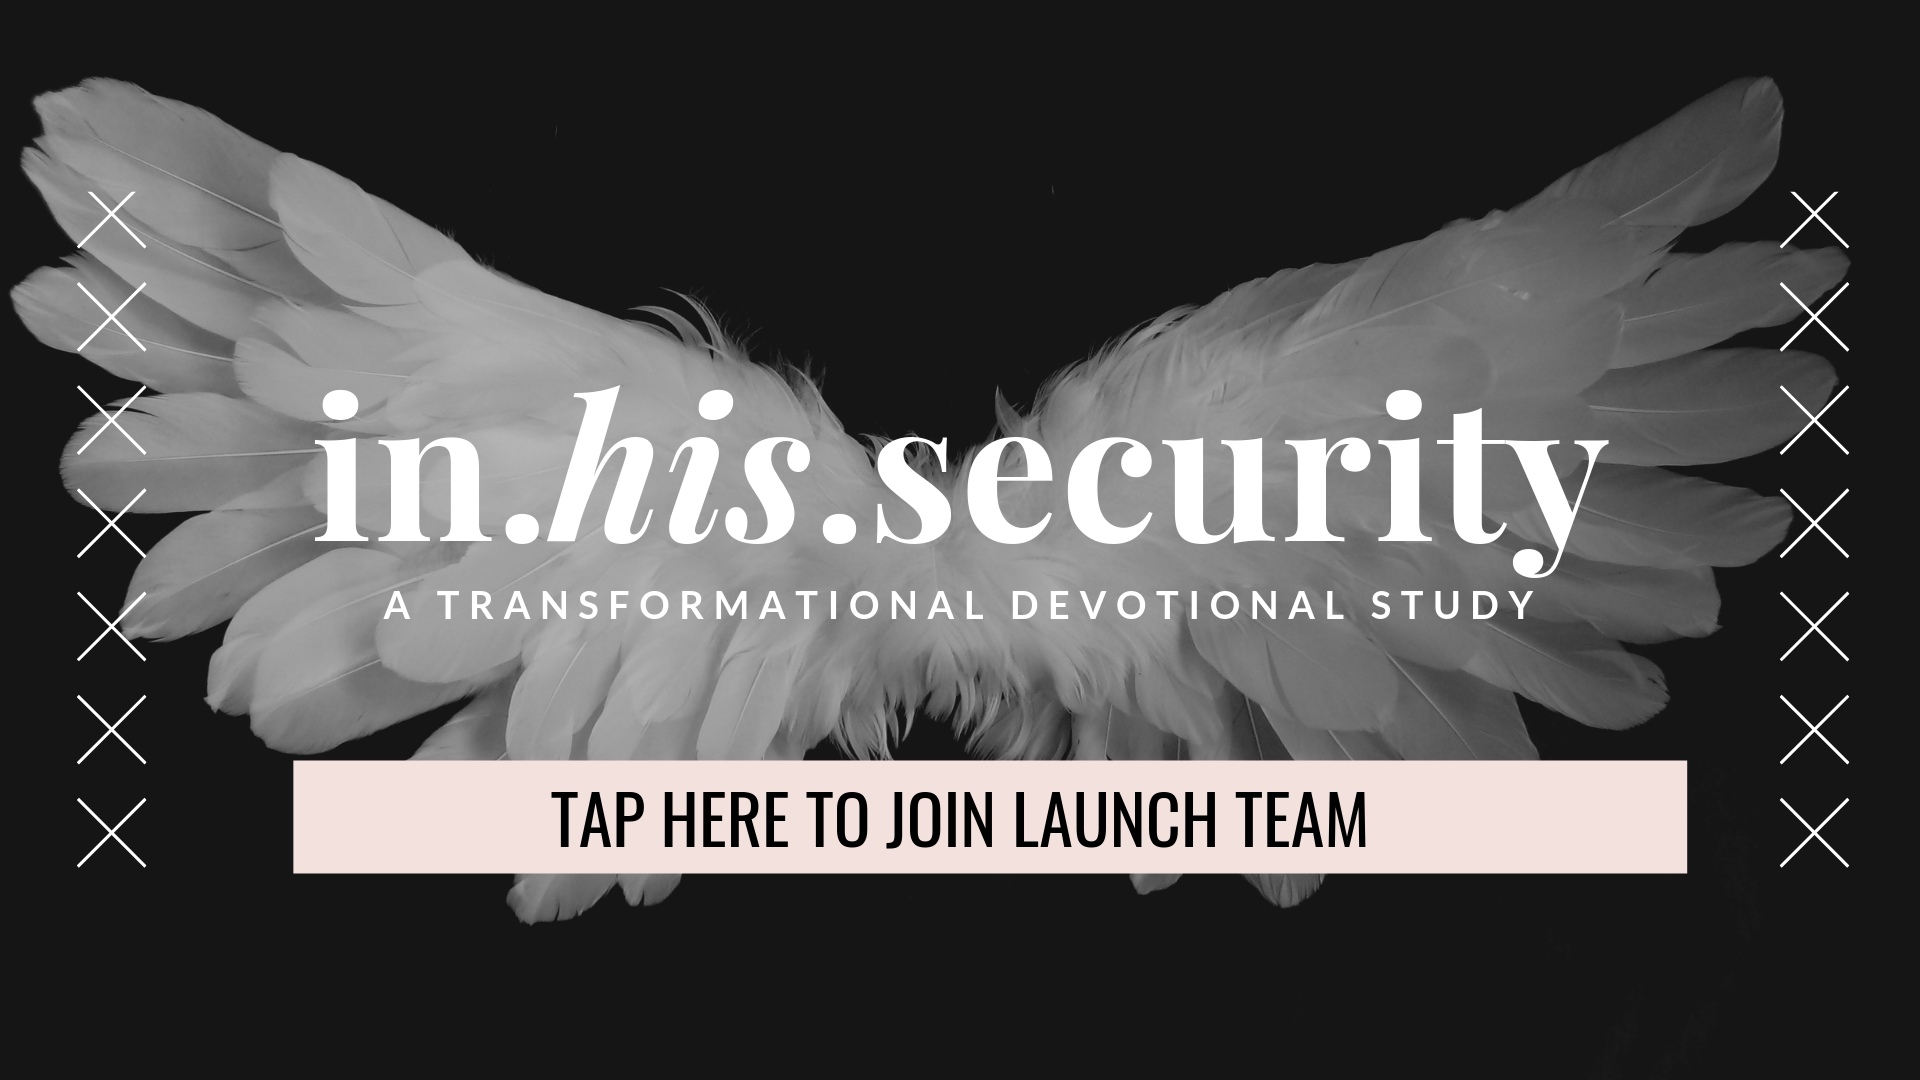 click here to join the in.his.security devotional ebook launch teram